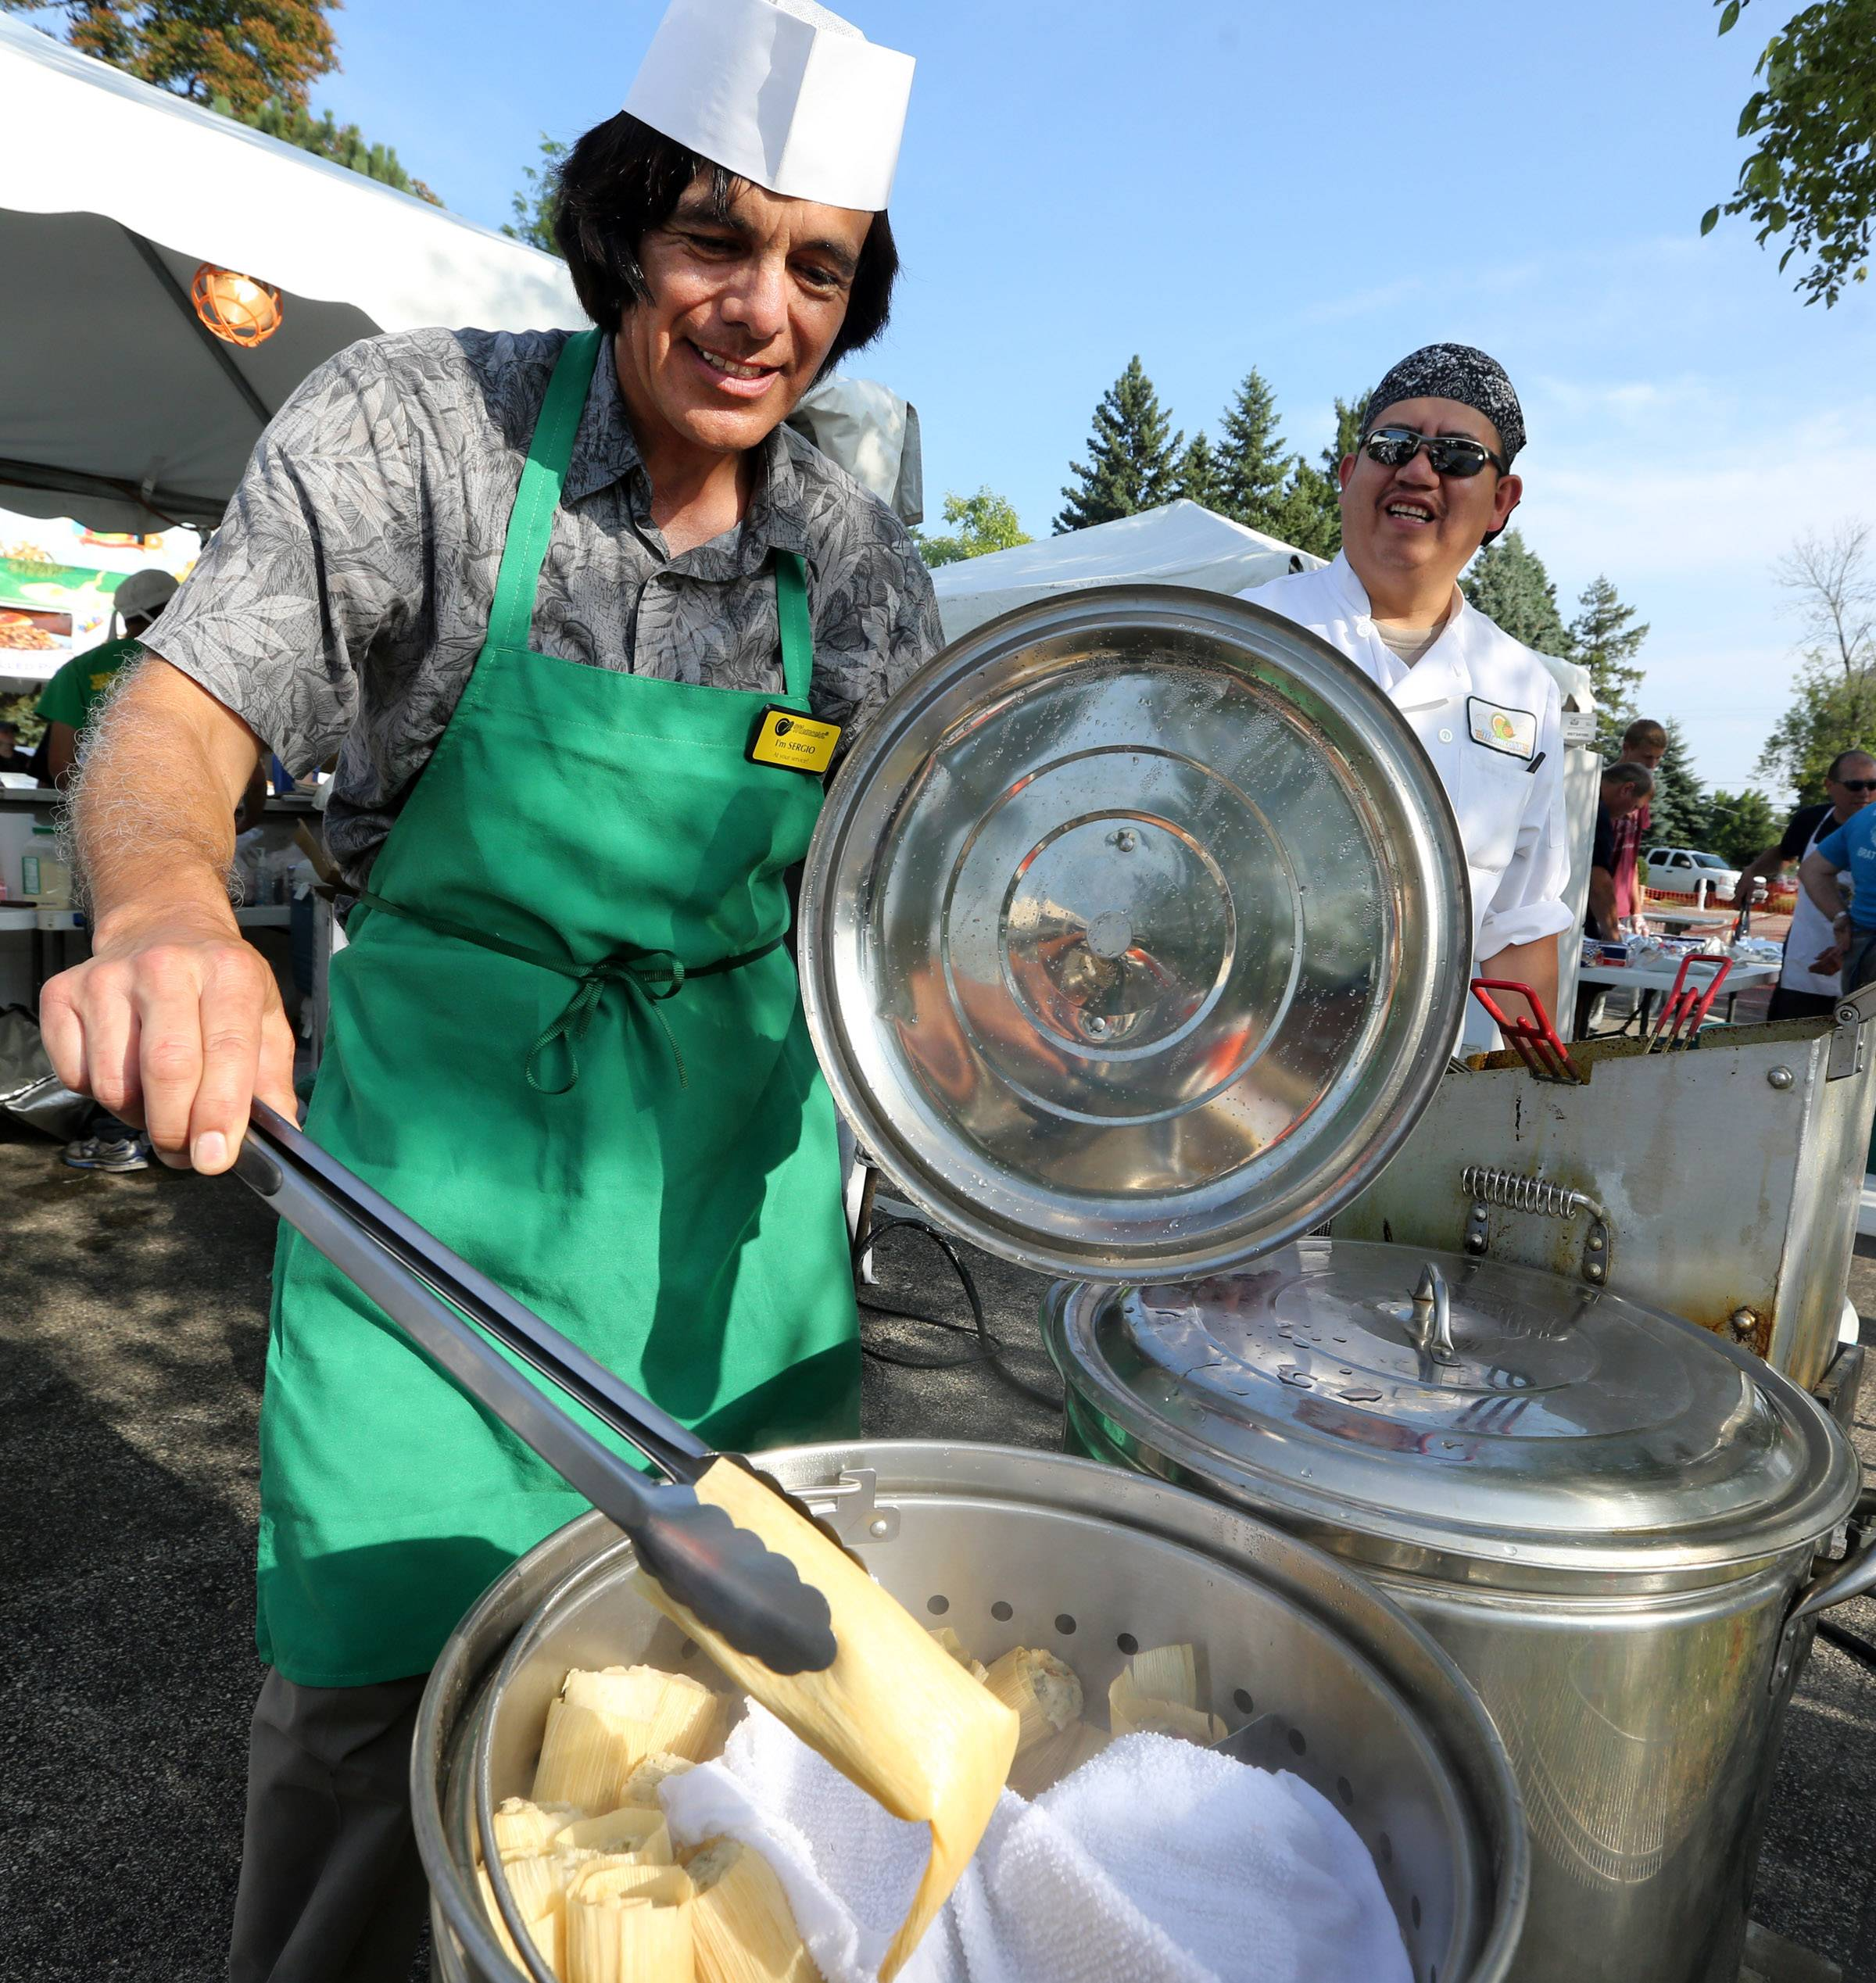 Sergio Rivera, owner of Momcorn in Gurnee, pulls a tamale out of a steamer at the second day of Gurnee Days on Friday.